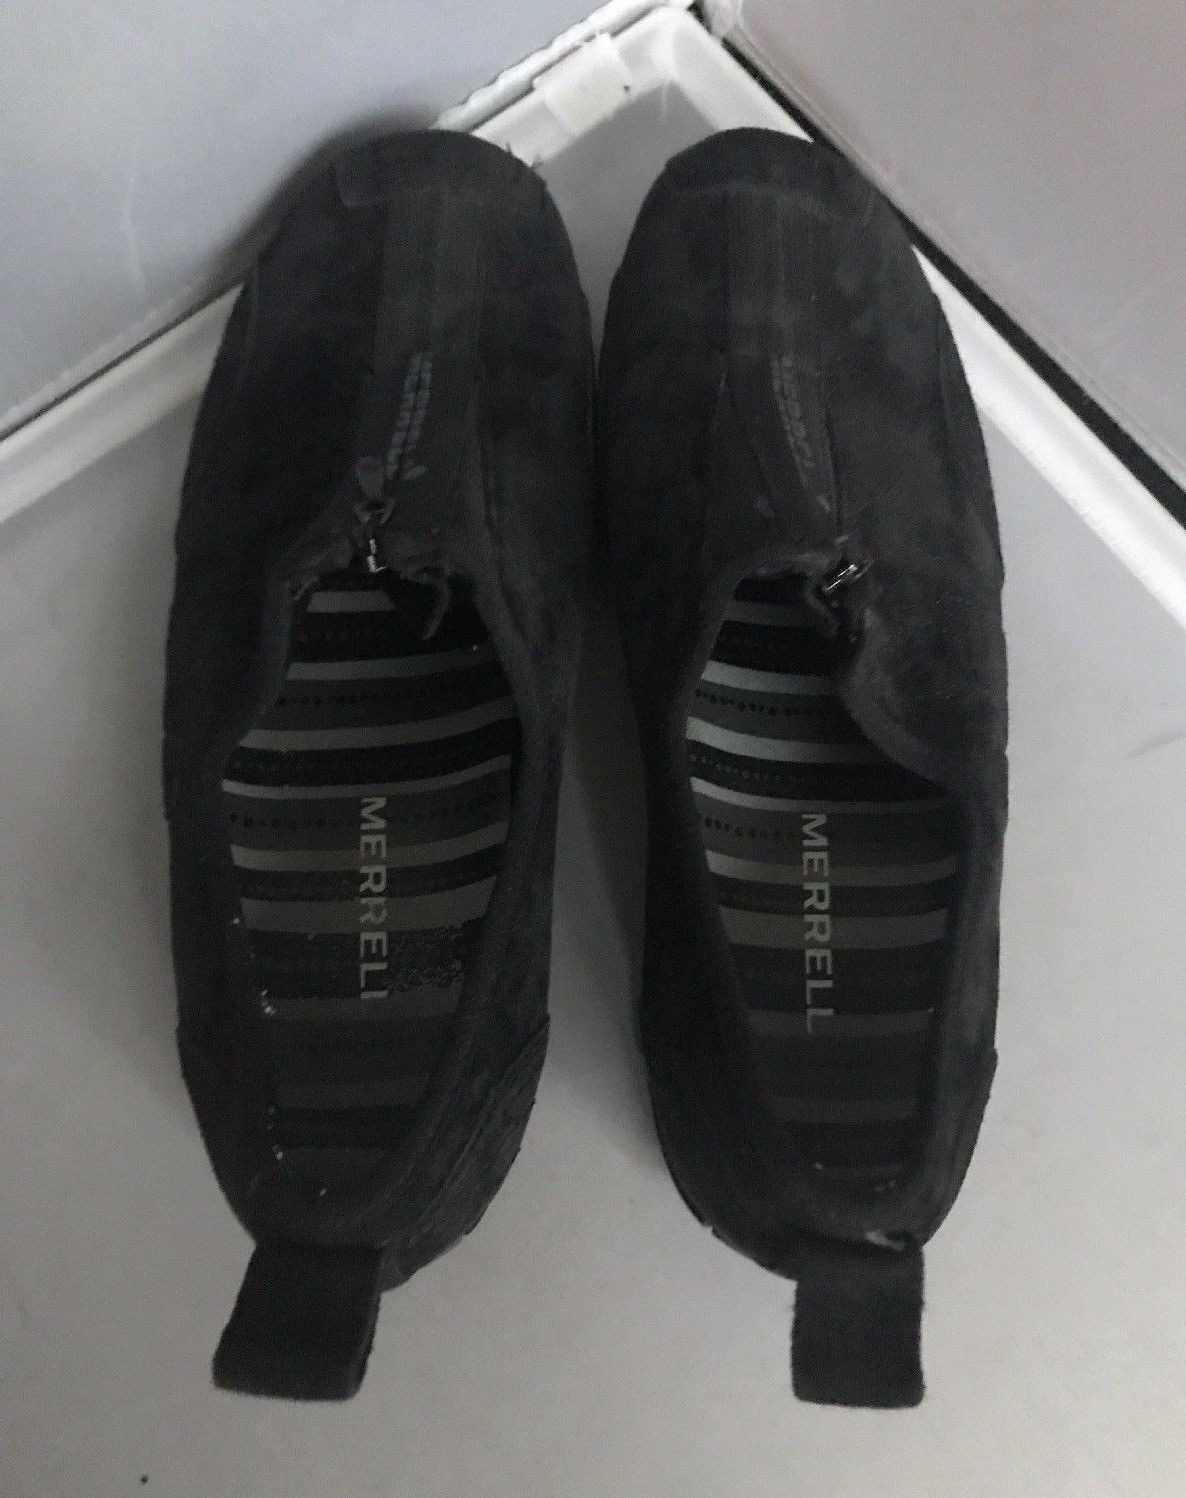 Merrells Barrado Leather Black Suede Zip ups Size 7.5